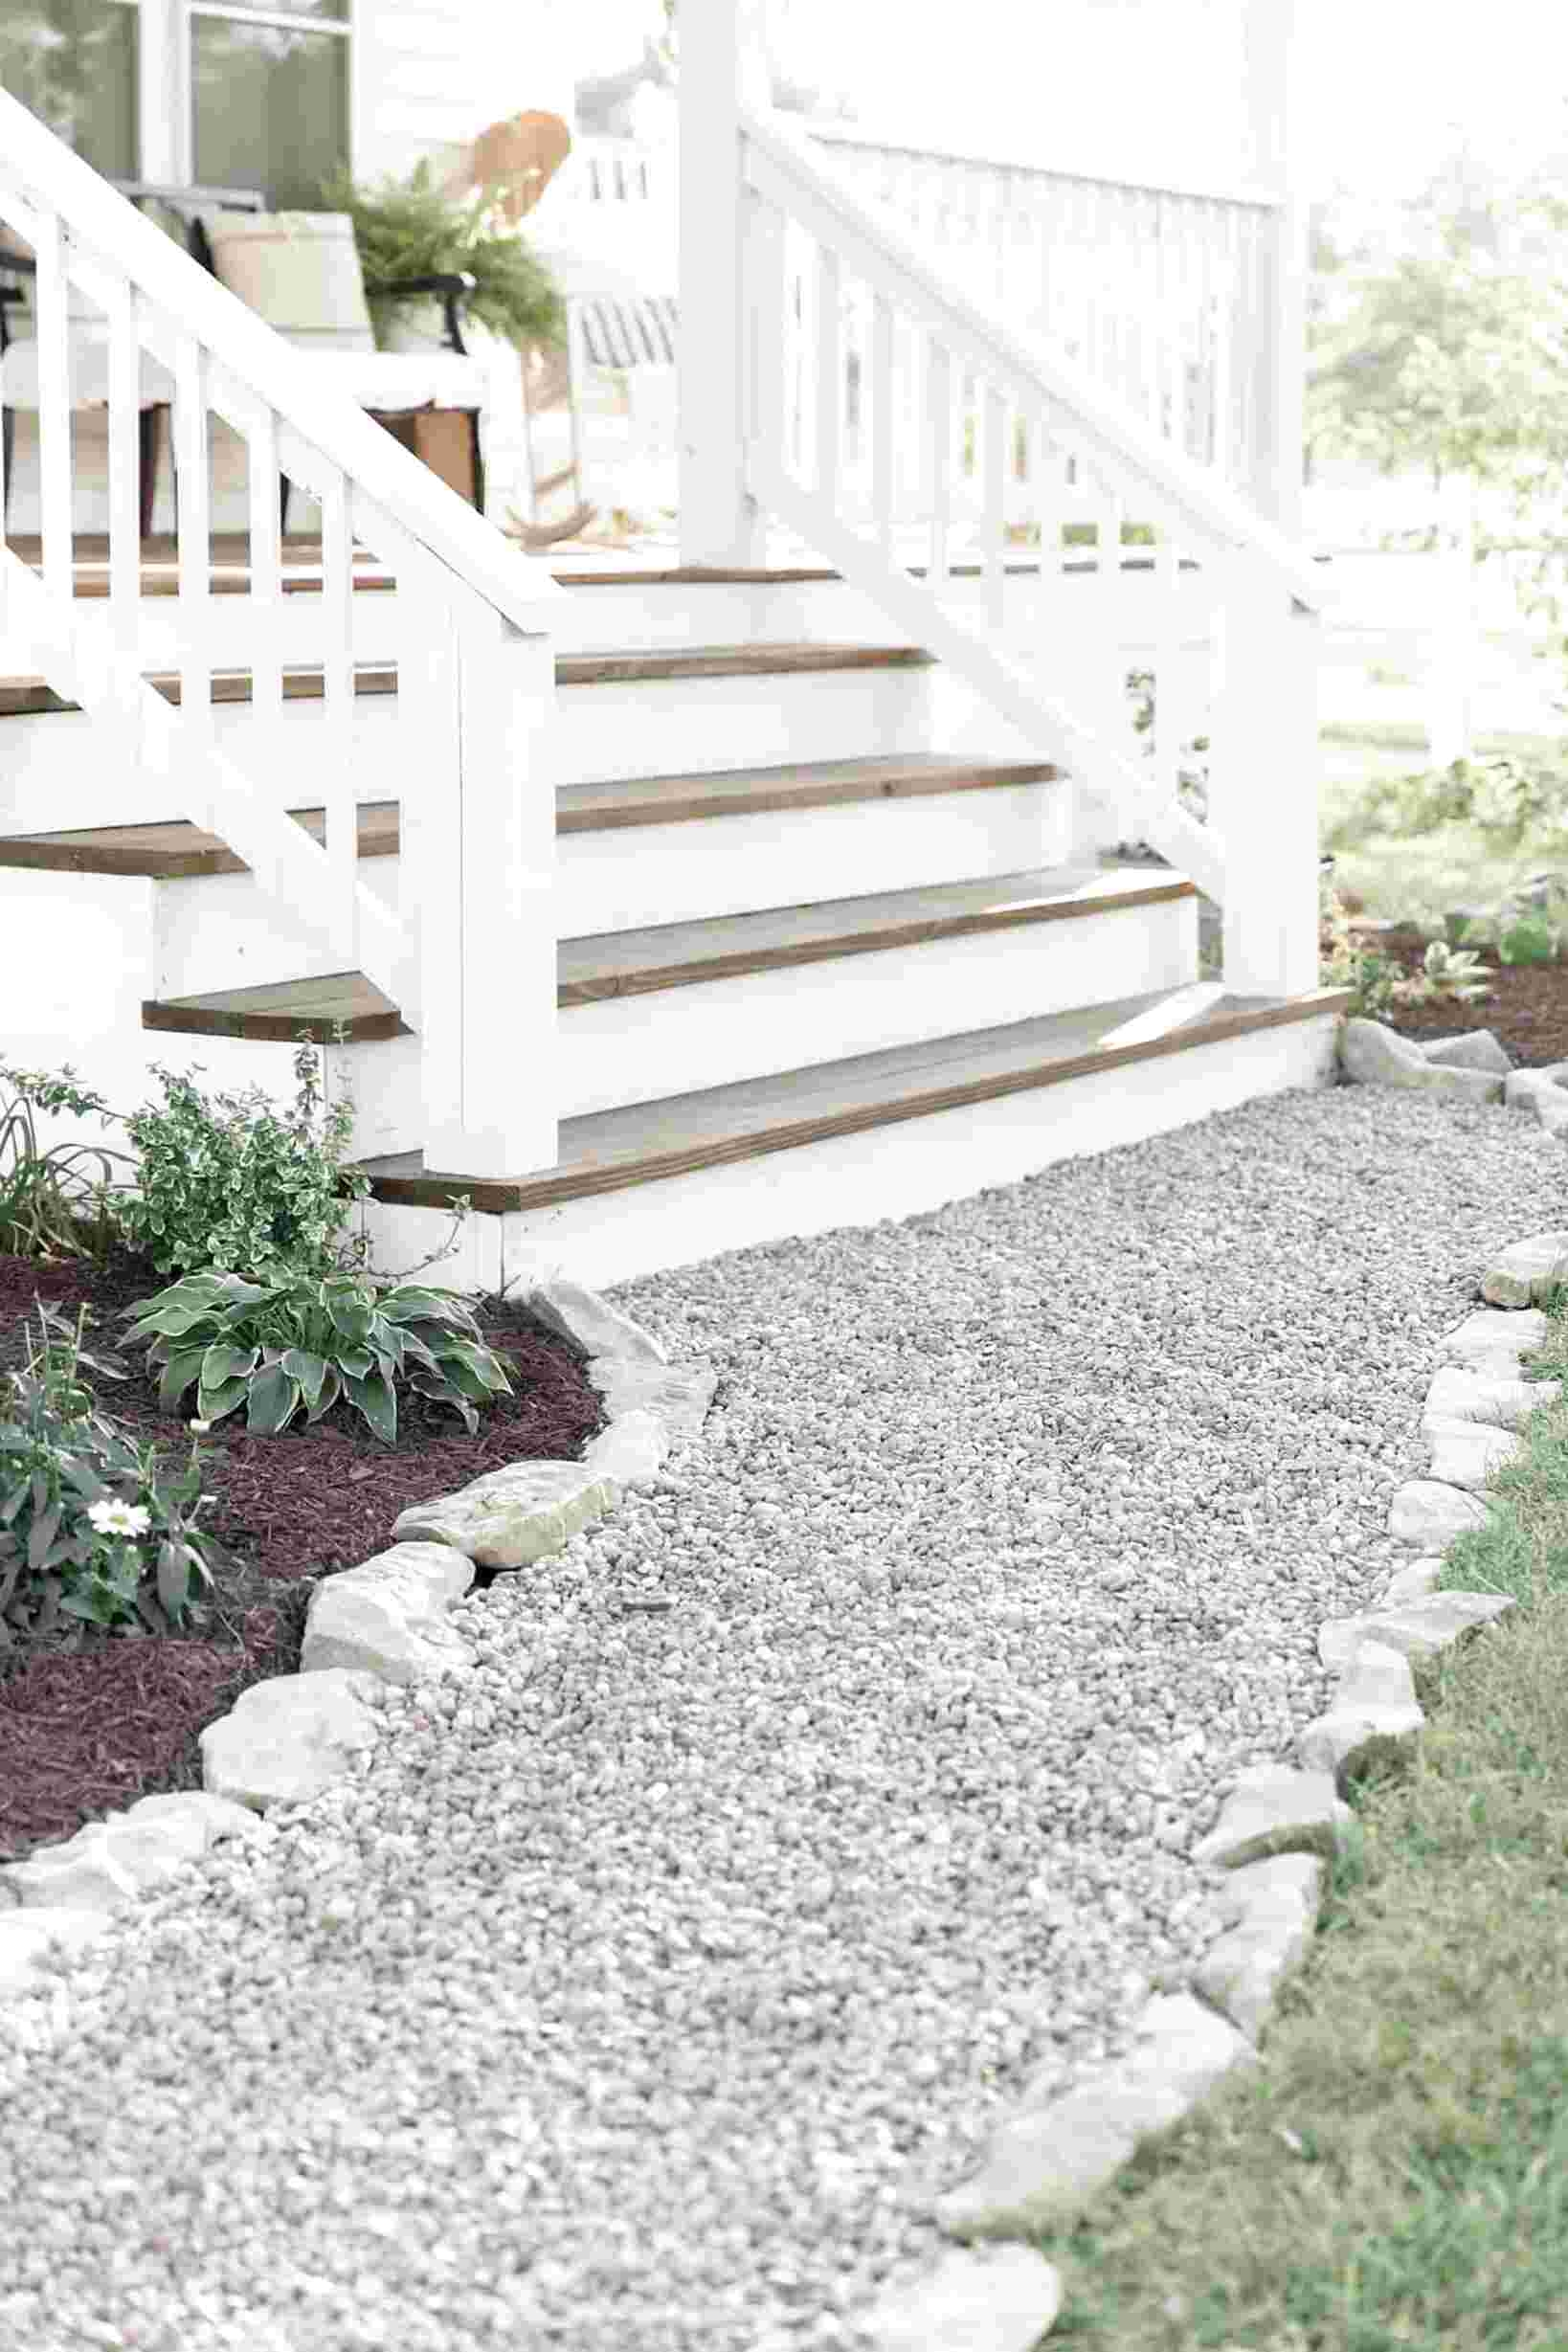 Concrete Steps For Sale Only 2 Left At 60 | Outdoor Steps For Sale